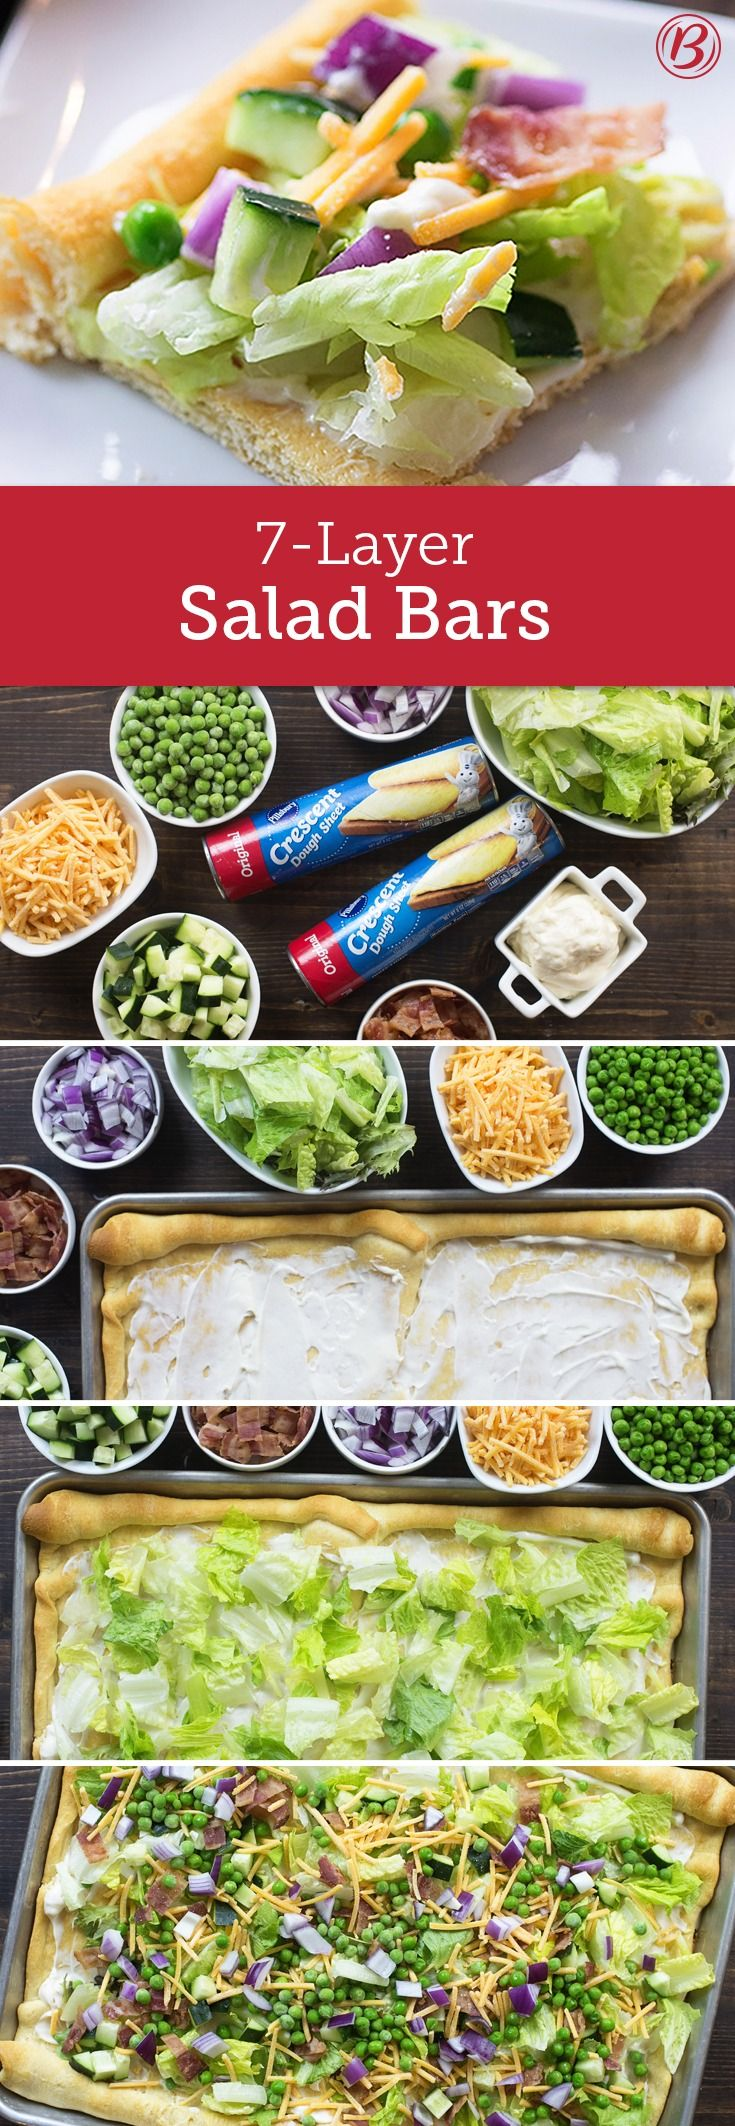 We turned a classic potluck winner into a handheld party food that tastes even better with a buttery crust. This go-to Seven-Layer Salad Bar has all of the favorite ingredients of the original: Bacon, cucumber, red onion, lettuce, peas, and Cheddar cheese – though this time its sitting on top of a freshly baked crescent dough sheet. Expert tip: If you have tomatoes, feel free to add them to the mix!